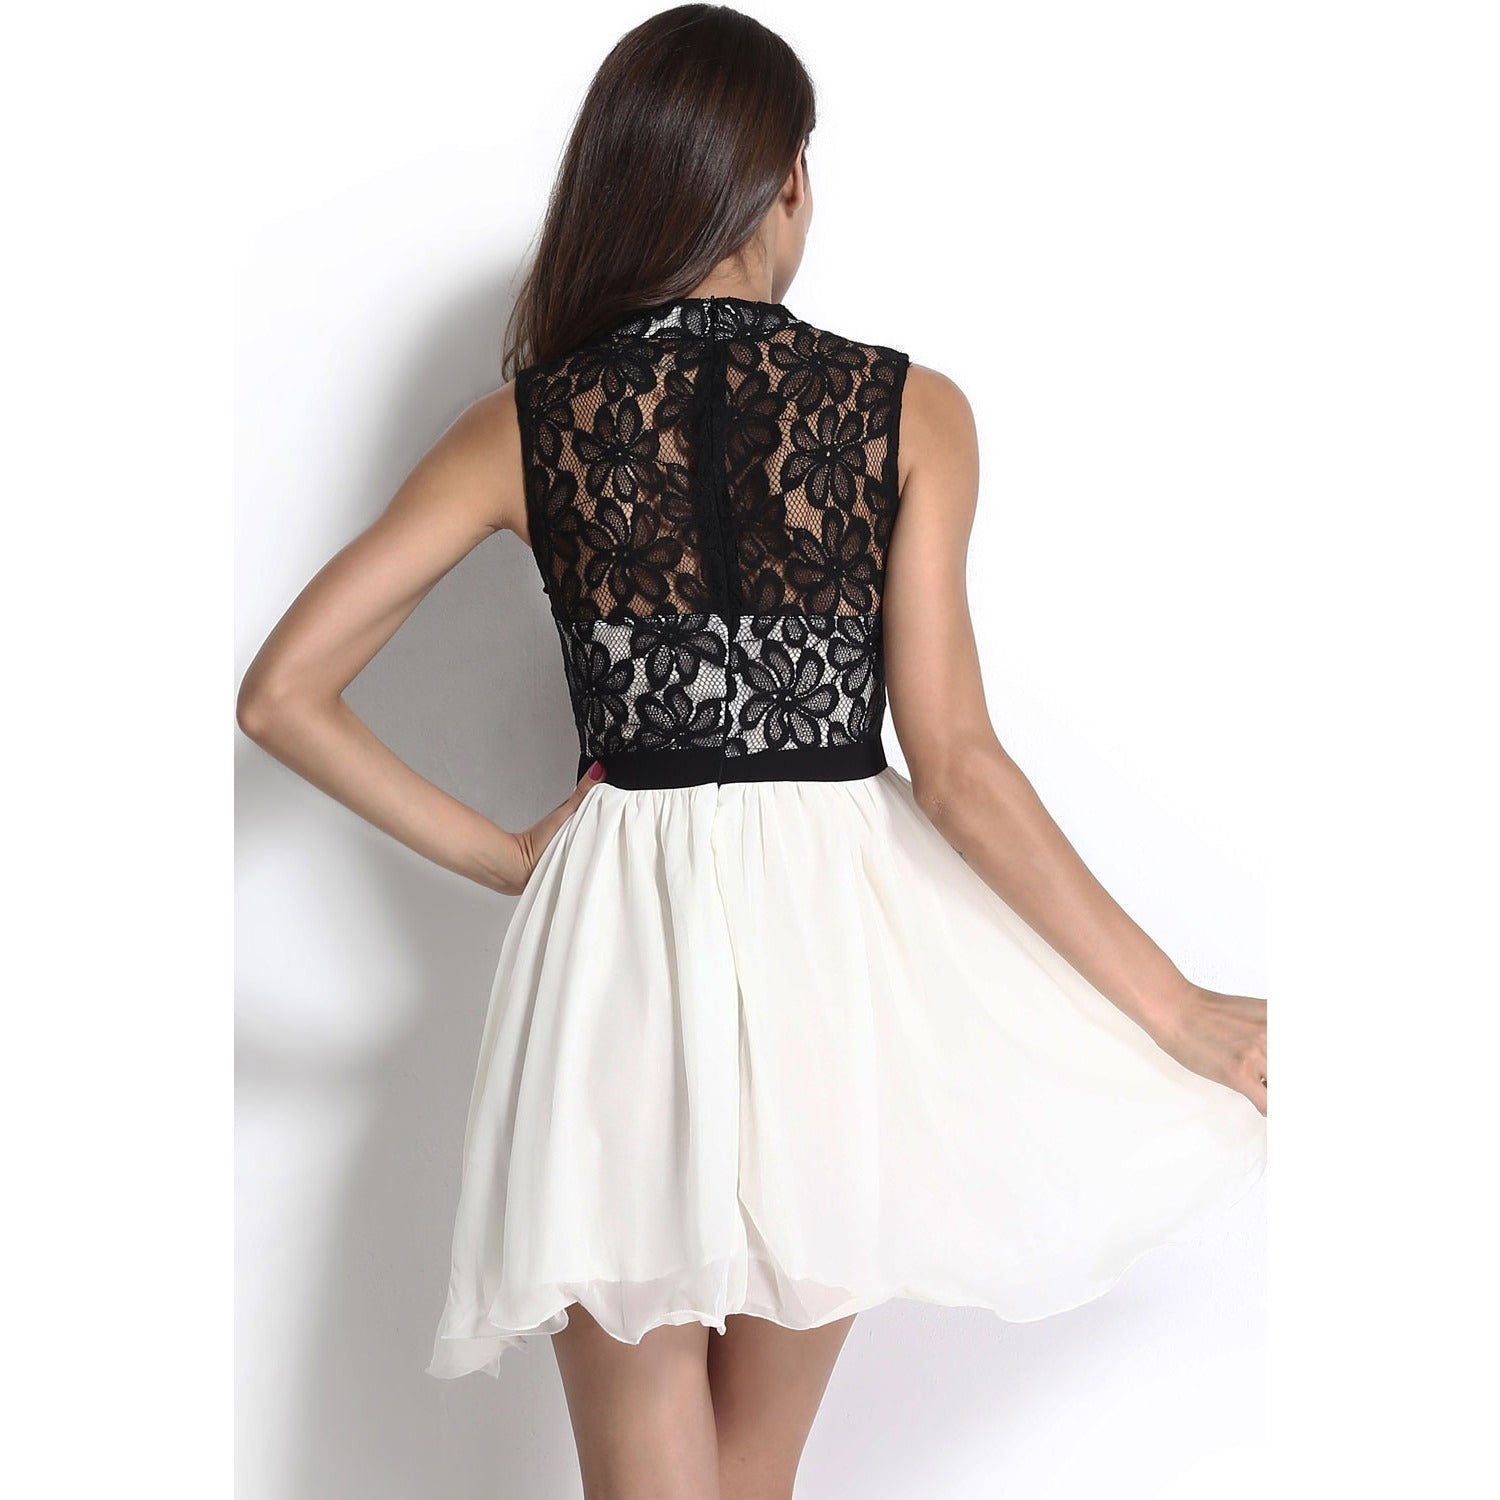 High Neck Lace Dress LAVELIQ - LAVELIQ - 3